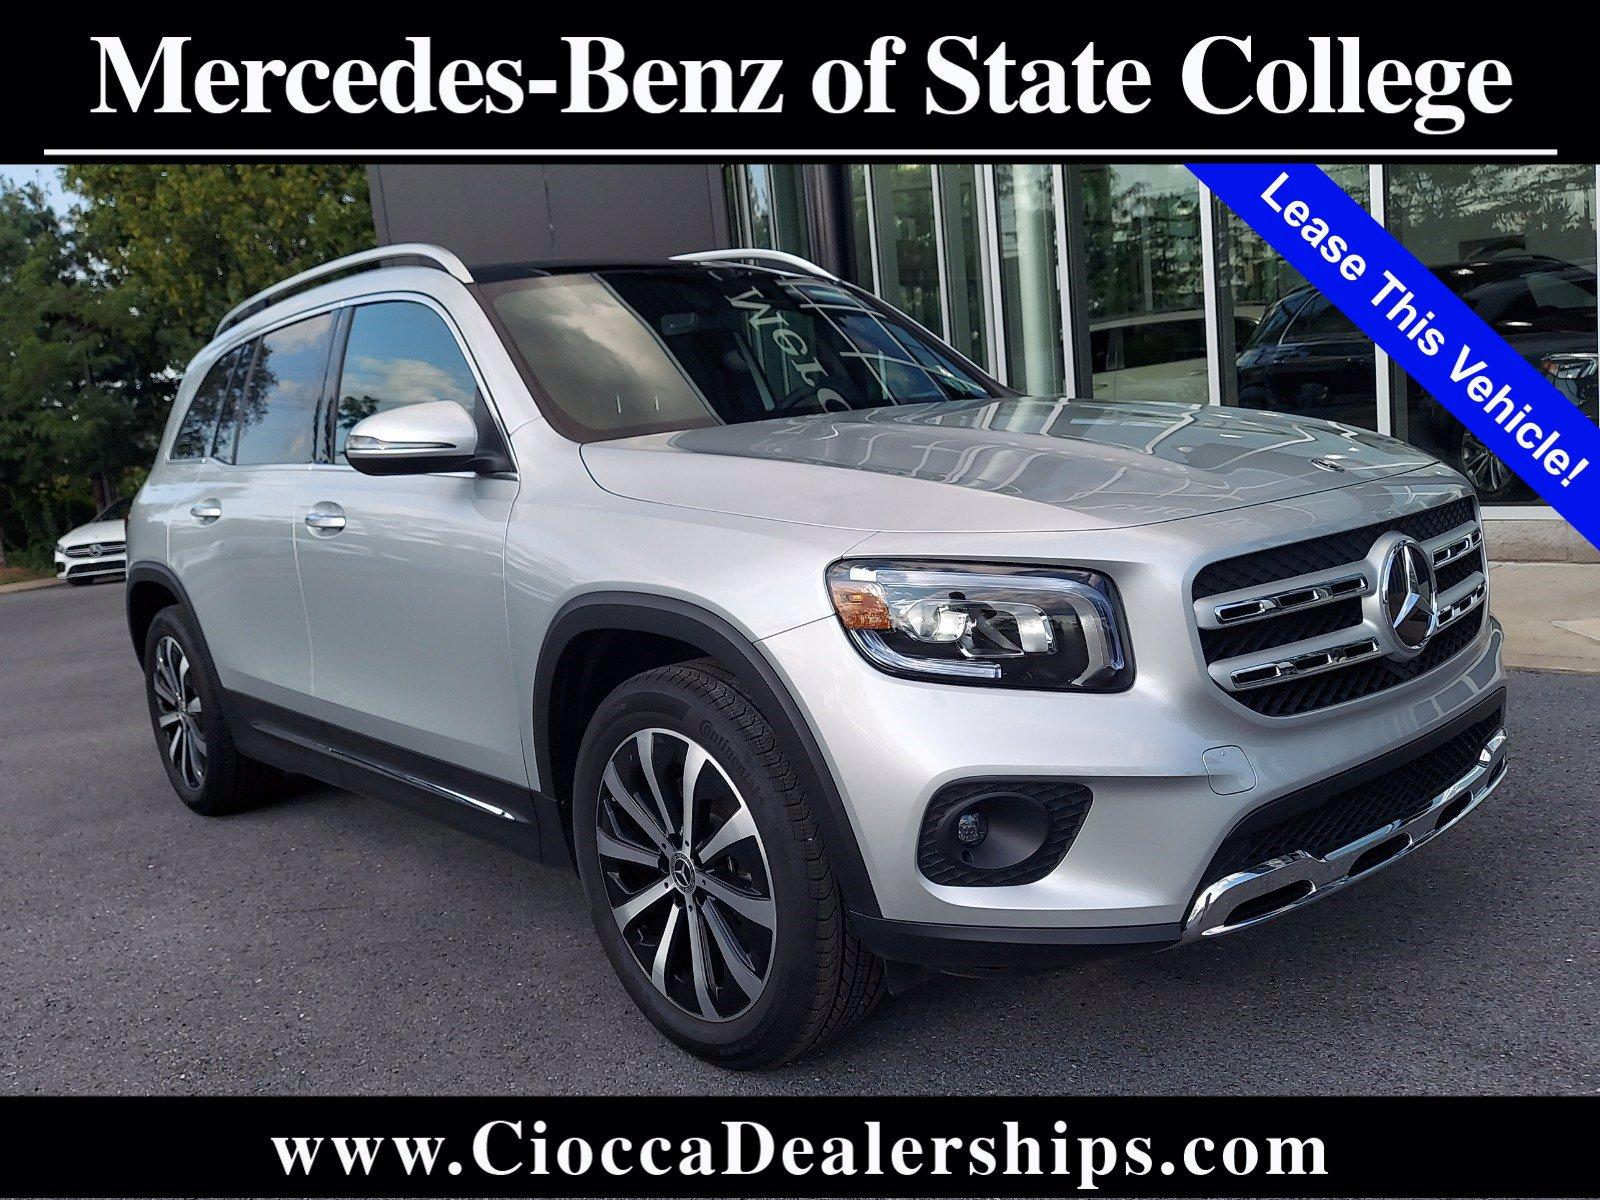 2021 Mercedes-Benz GLB Vehicle Photo in State College, PA 16801